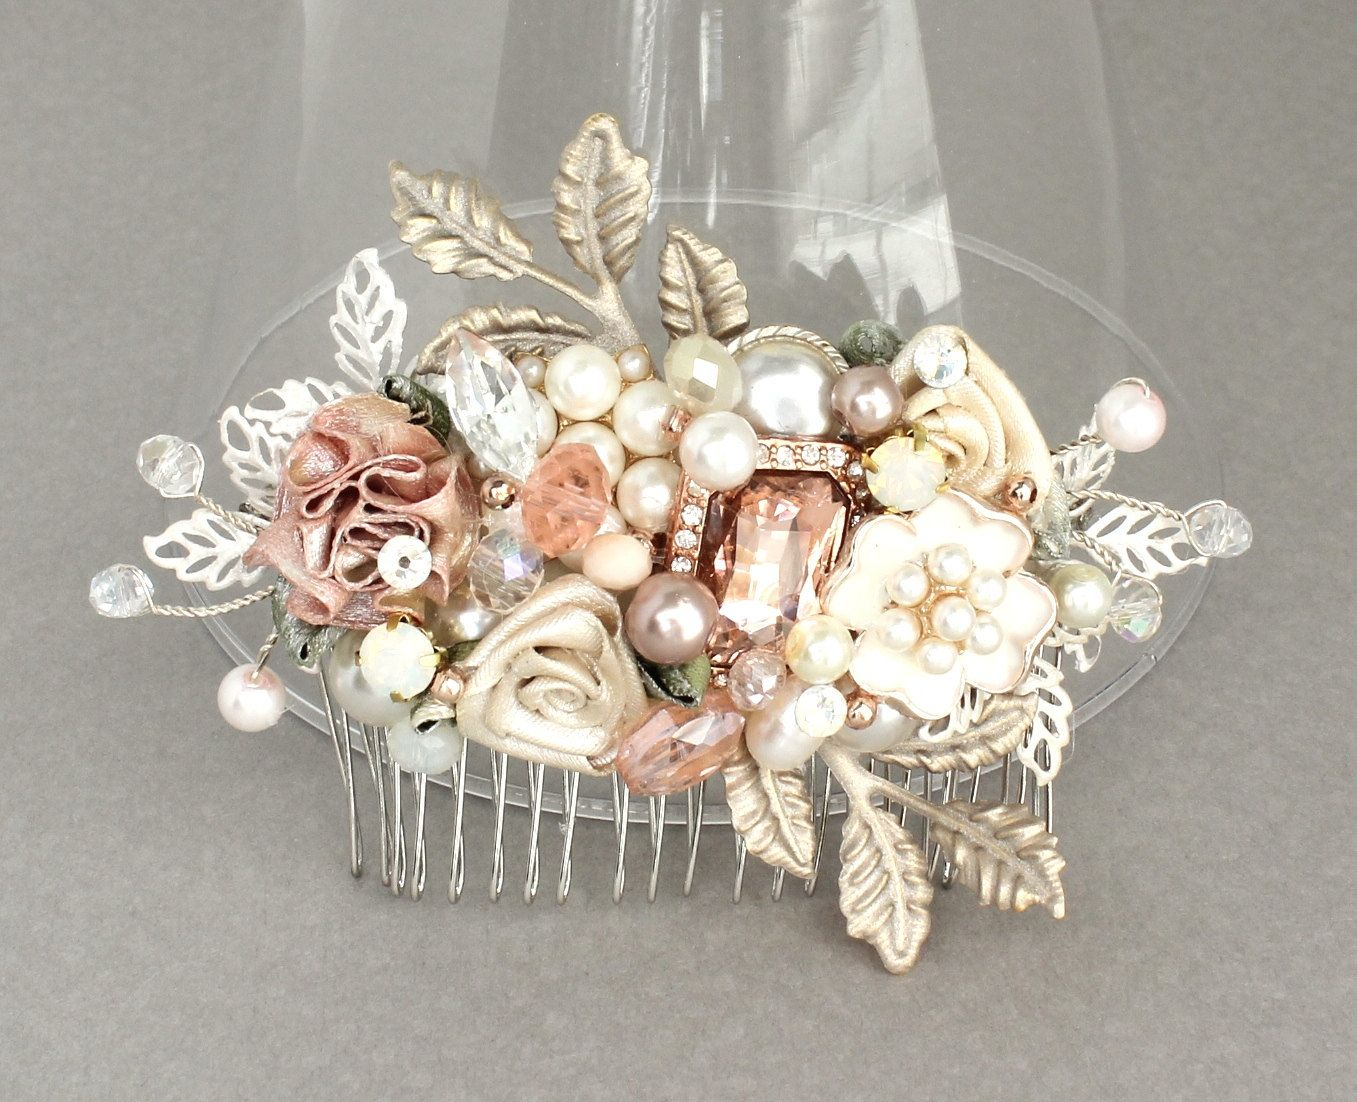 Rose gold wedding hair accessories - Rose Gold Bridal Comb Bridal Hair Accessories Rose Gold Hairpiece Wedding Hair Accessories